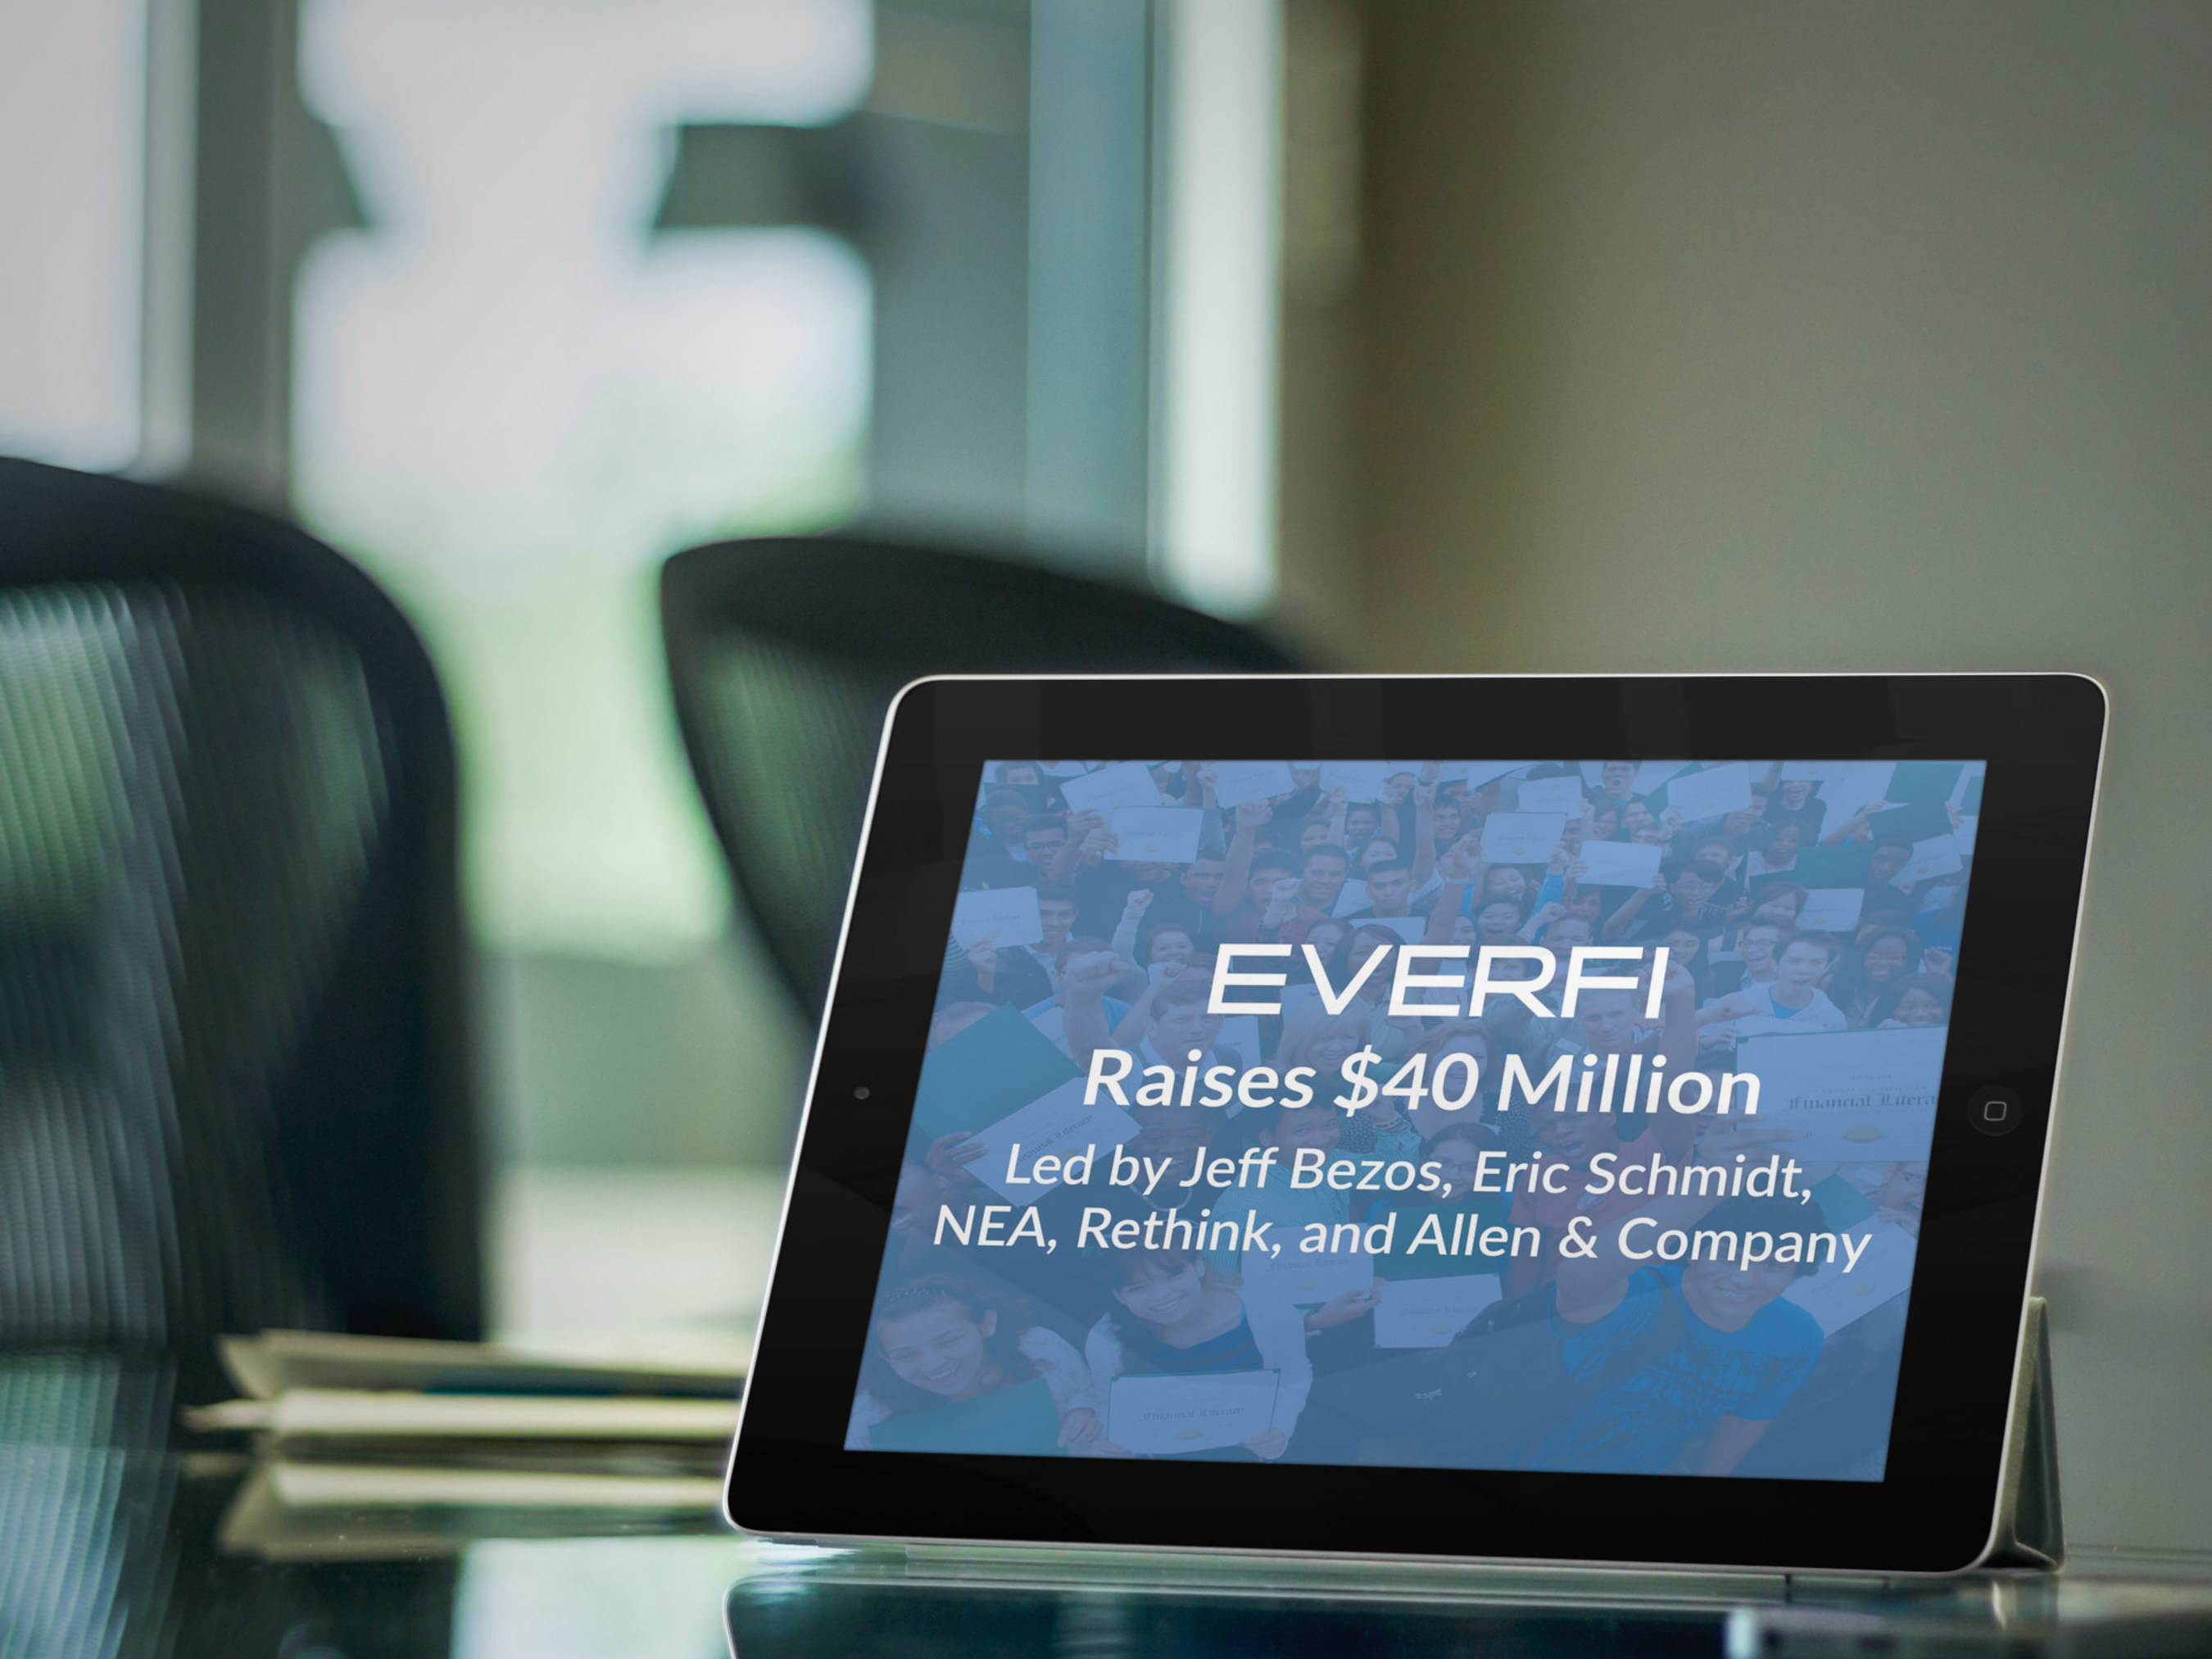 EverFi Raises $40 Million in Funding from Major Technology Leaders